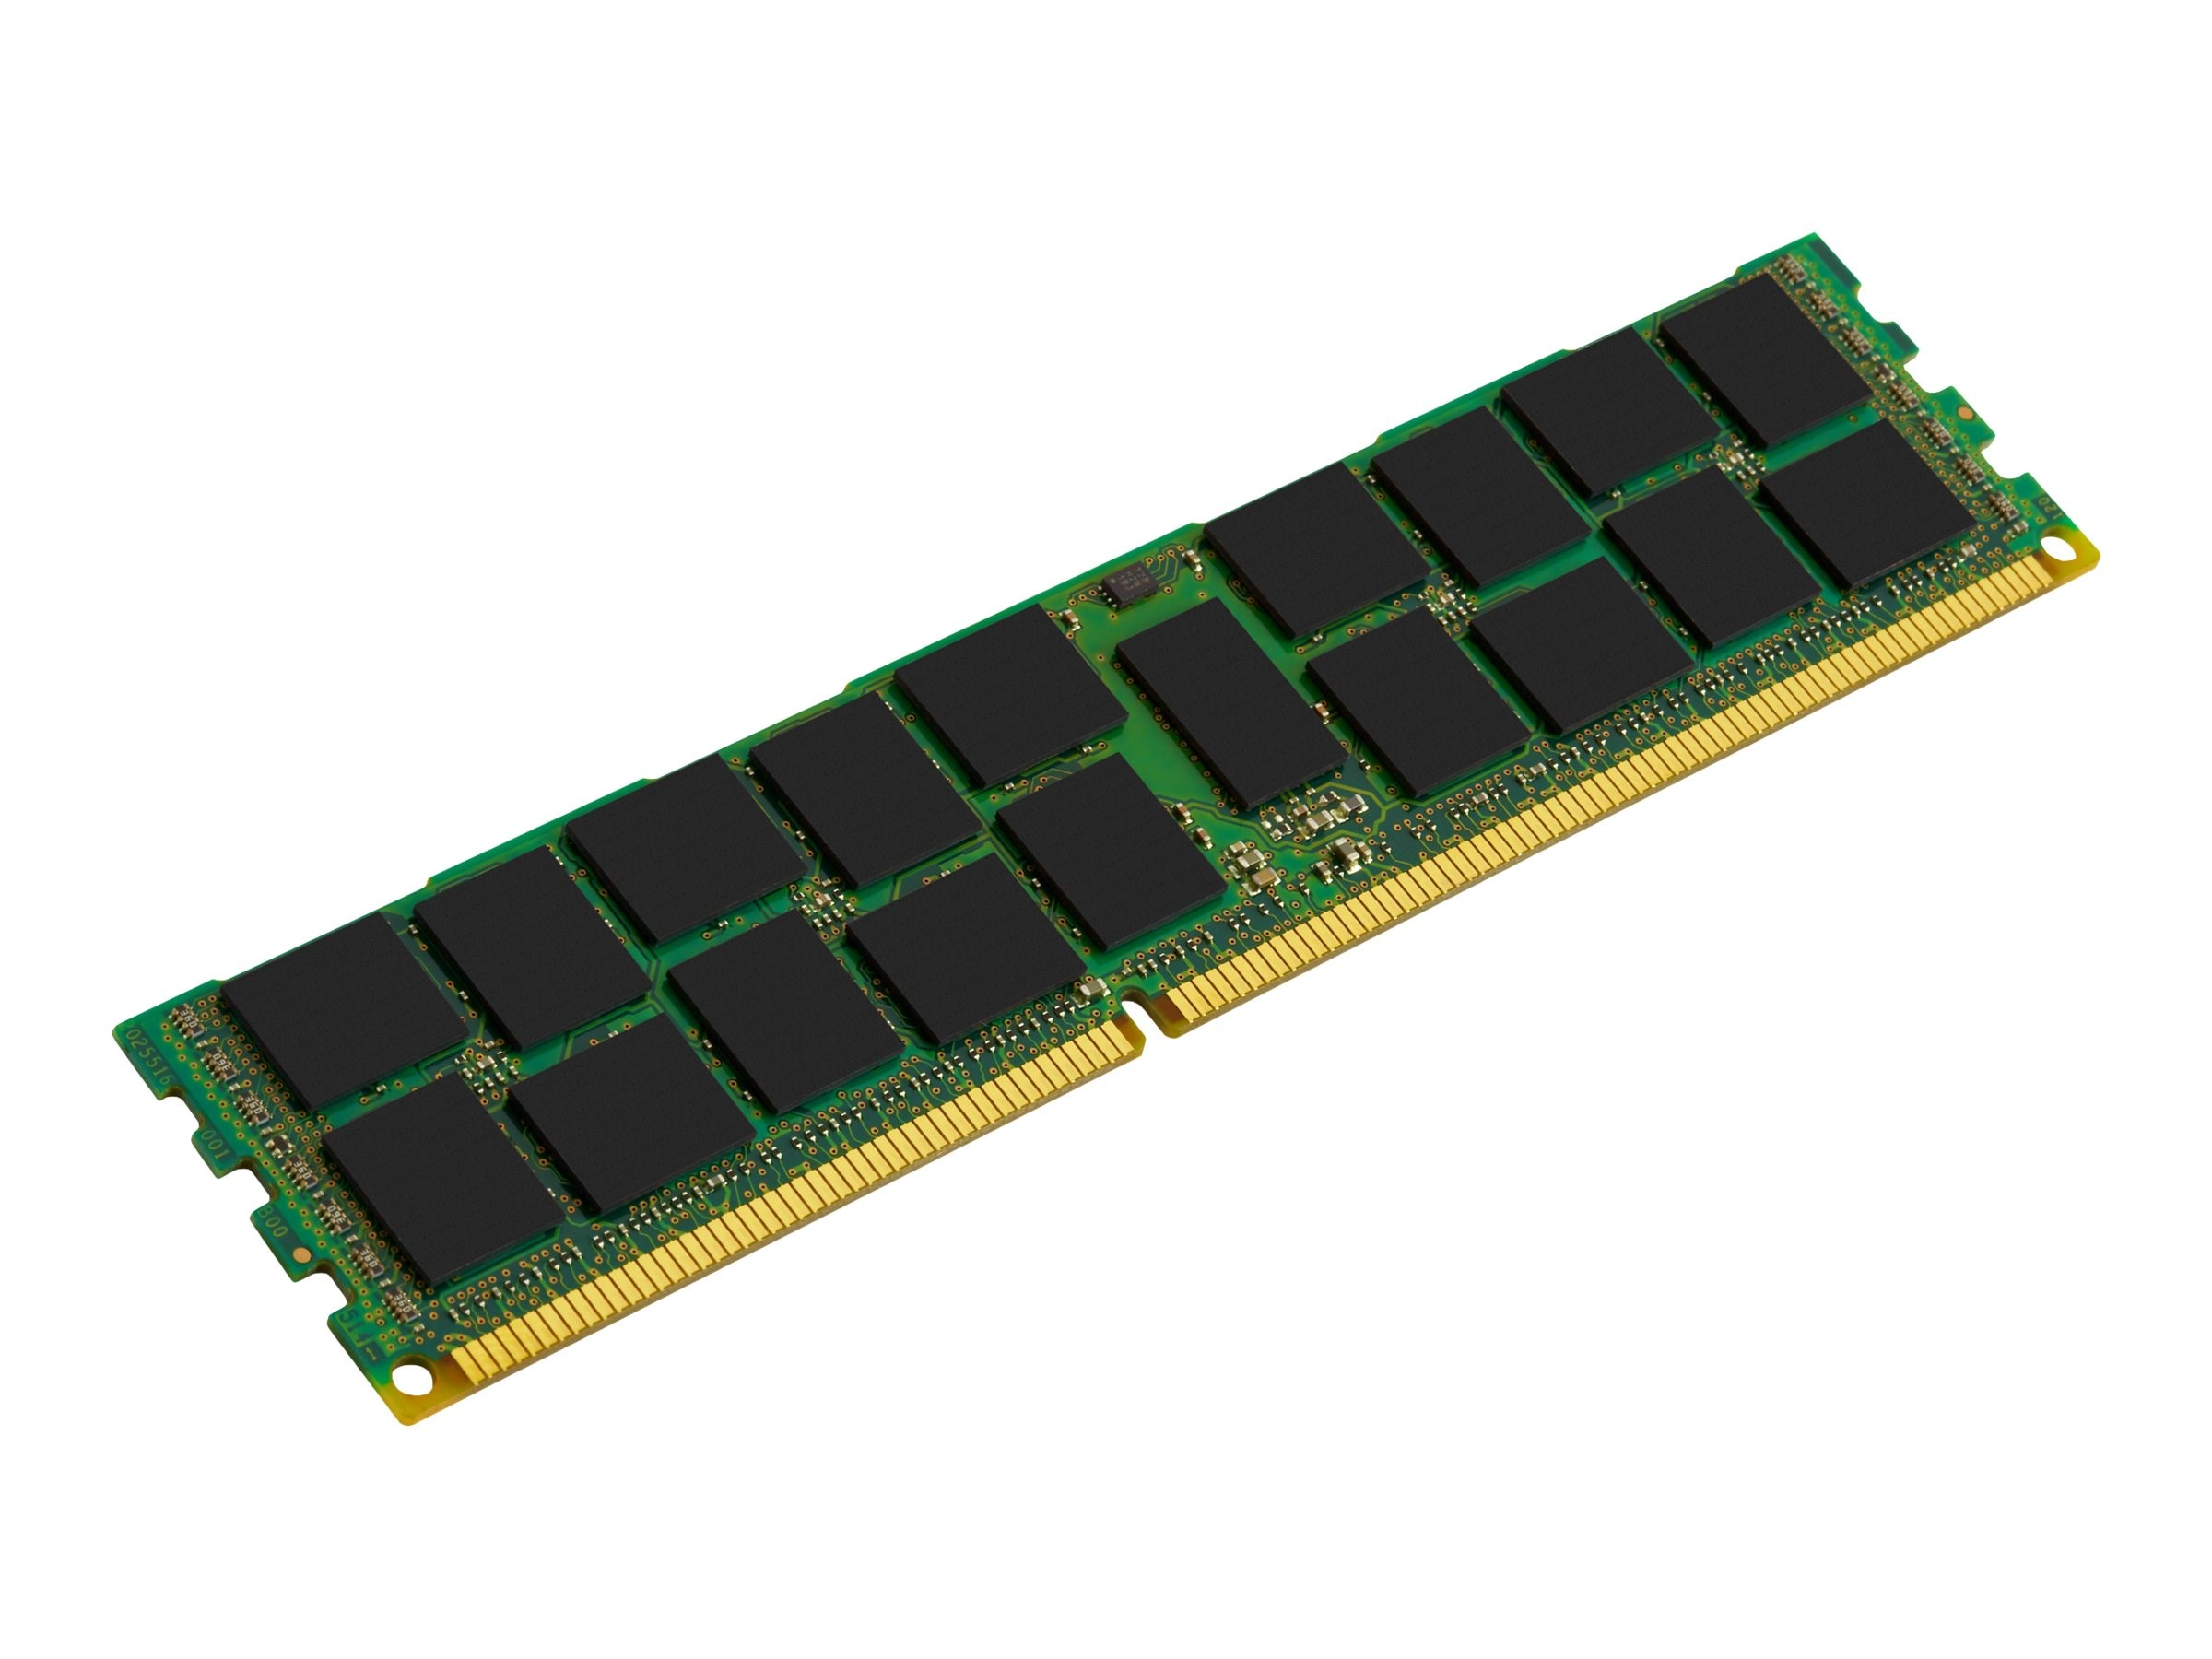 Kingston KTD-PE316LV/8G Image 1